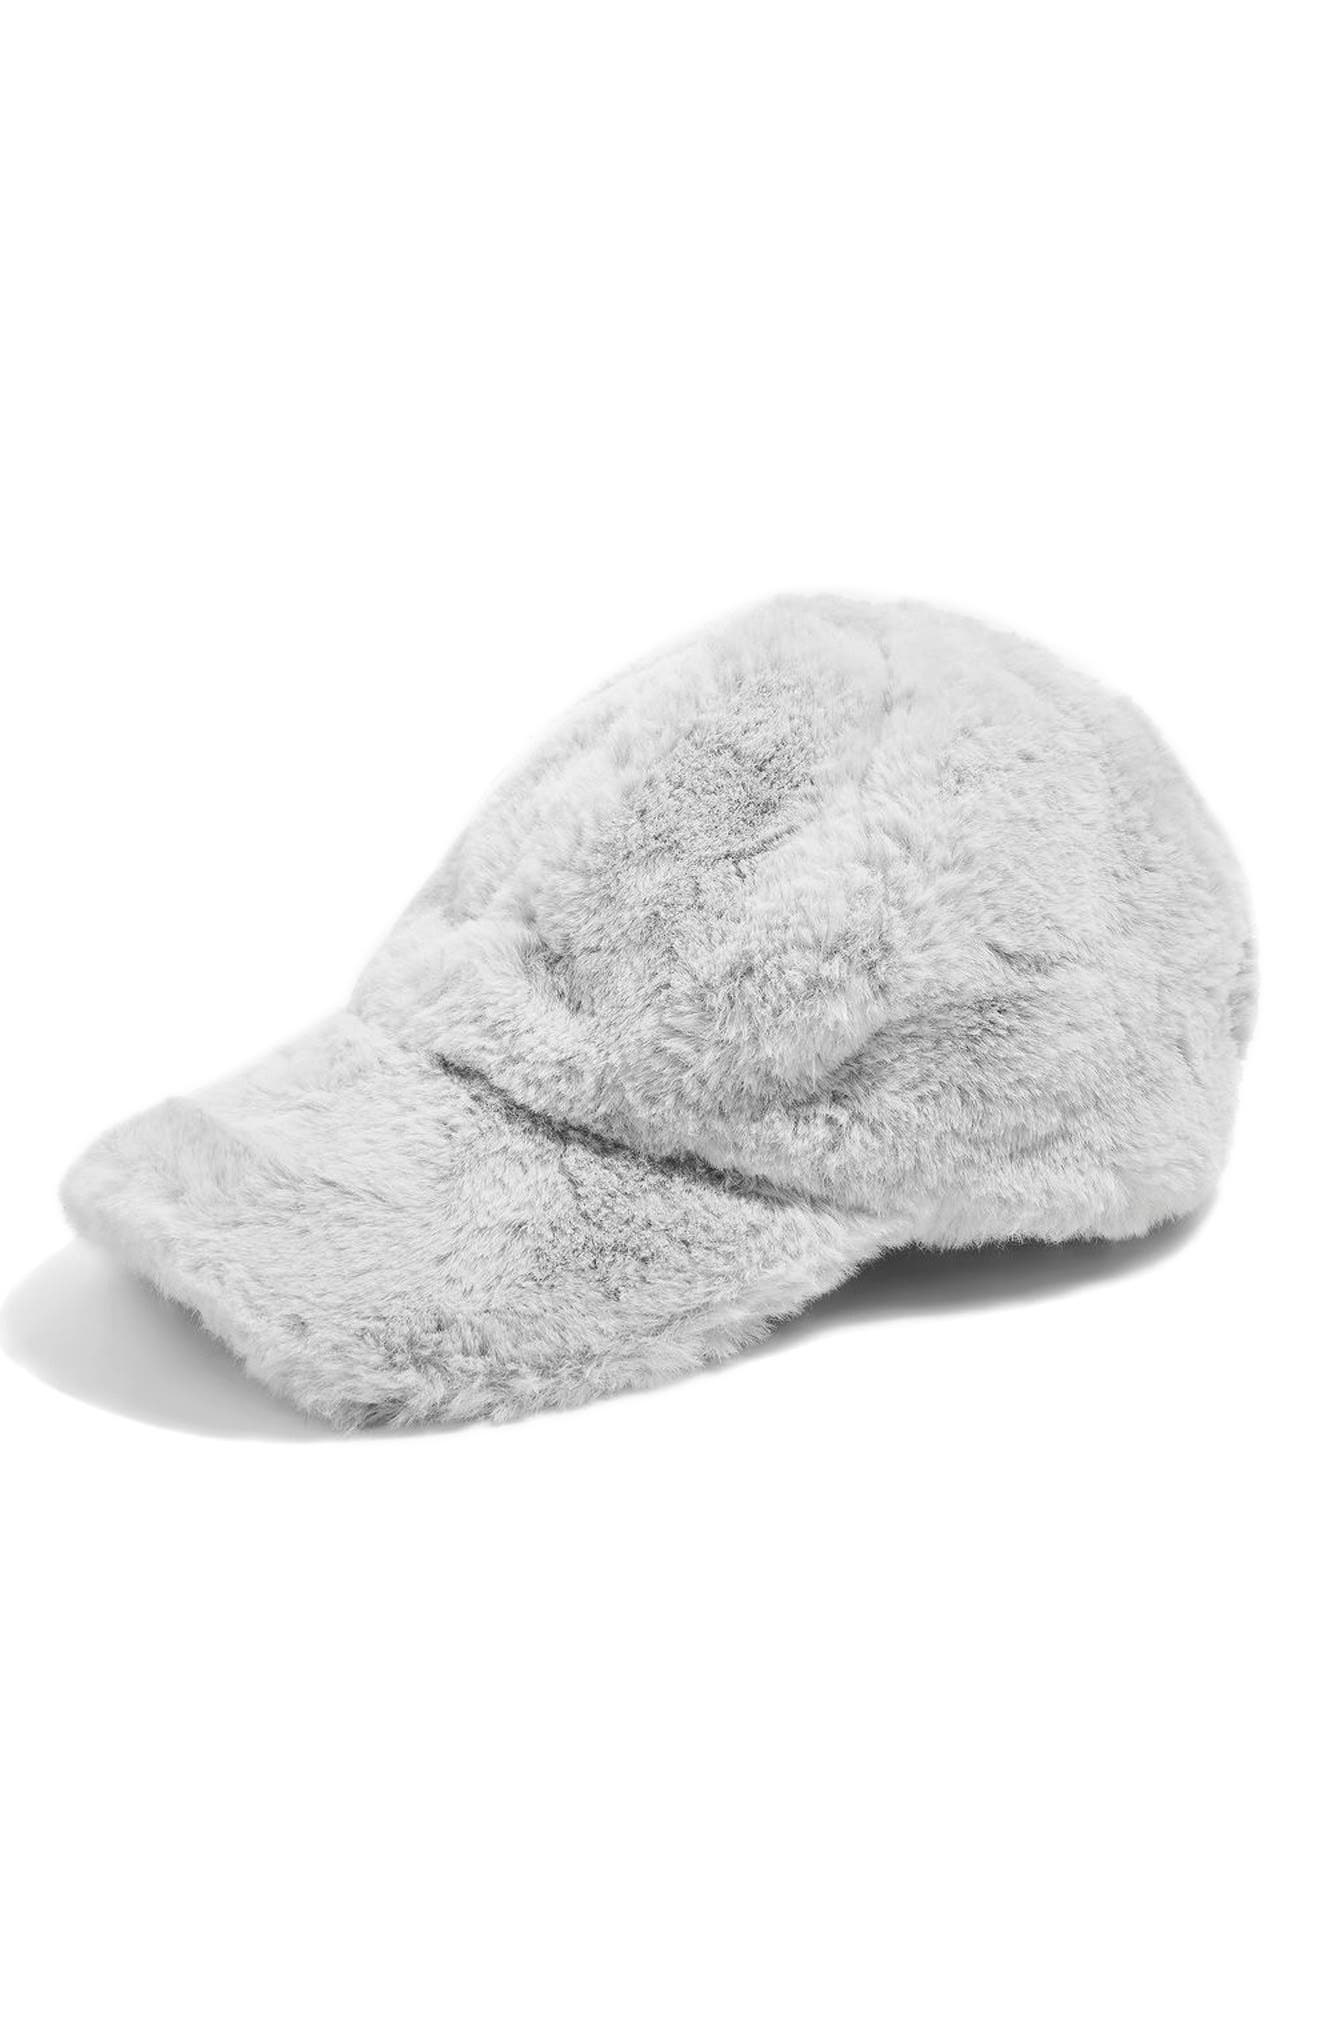 Faux Fur Baseball Cap,                             Main thumbnail 1, color,                             020